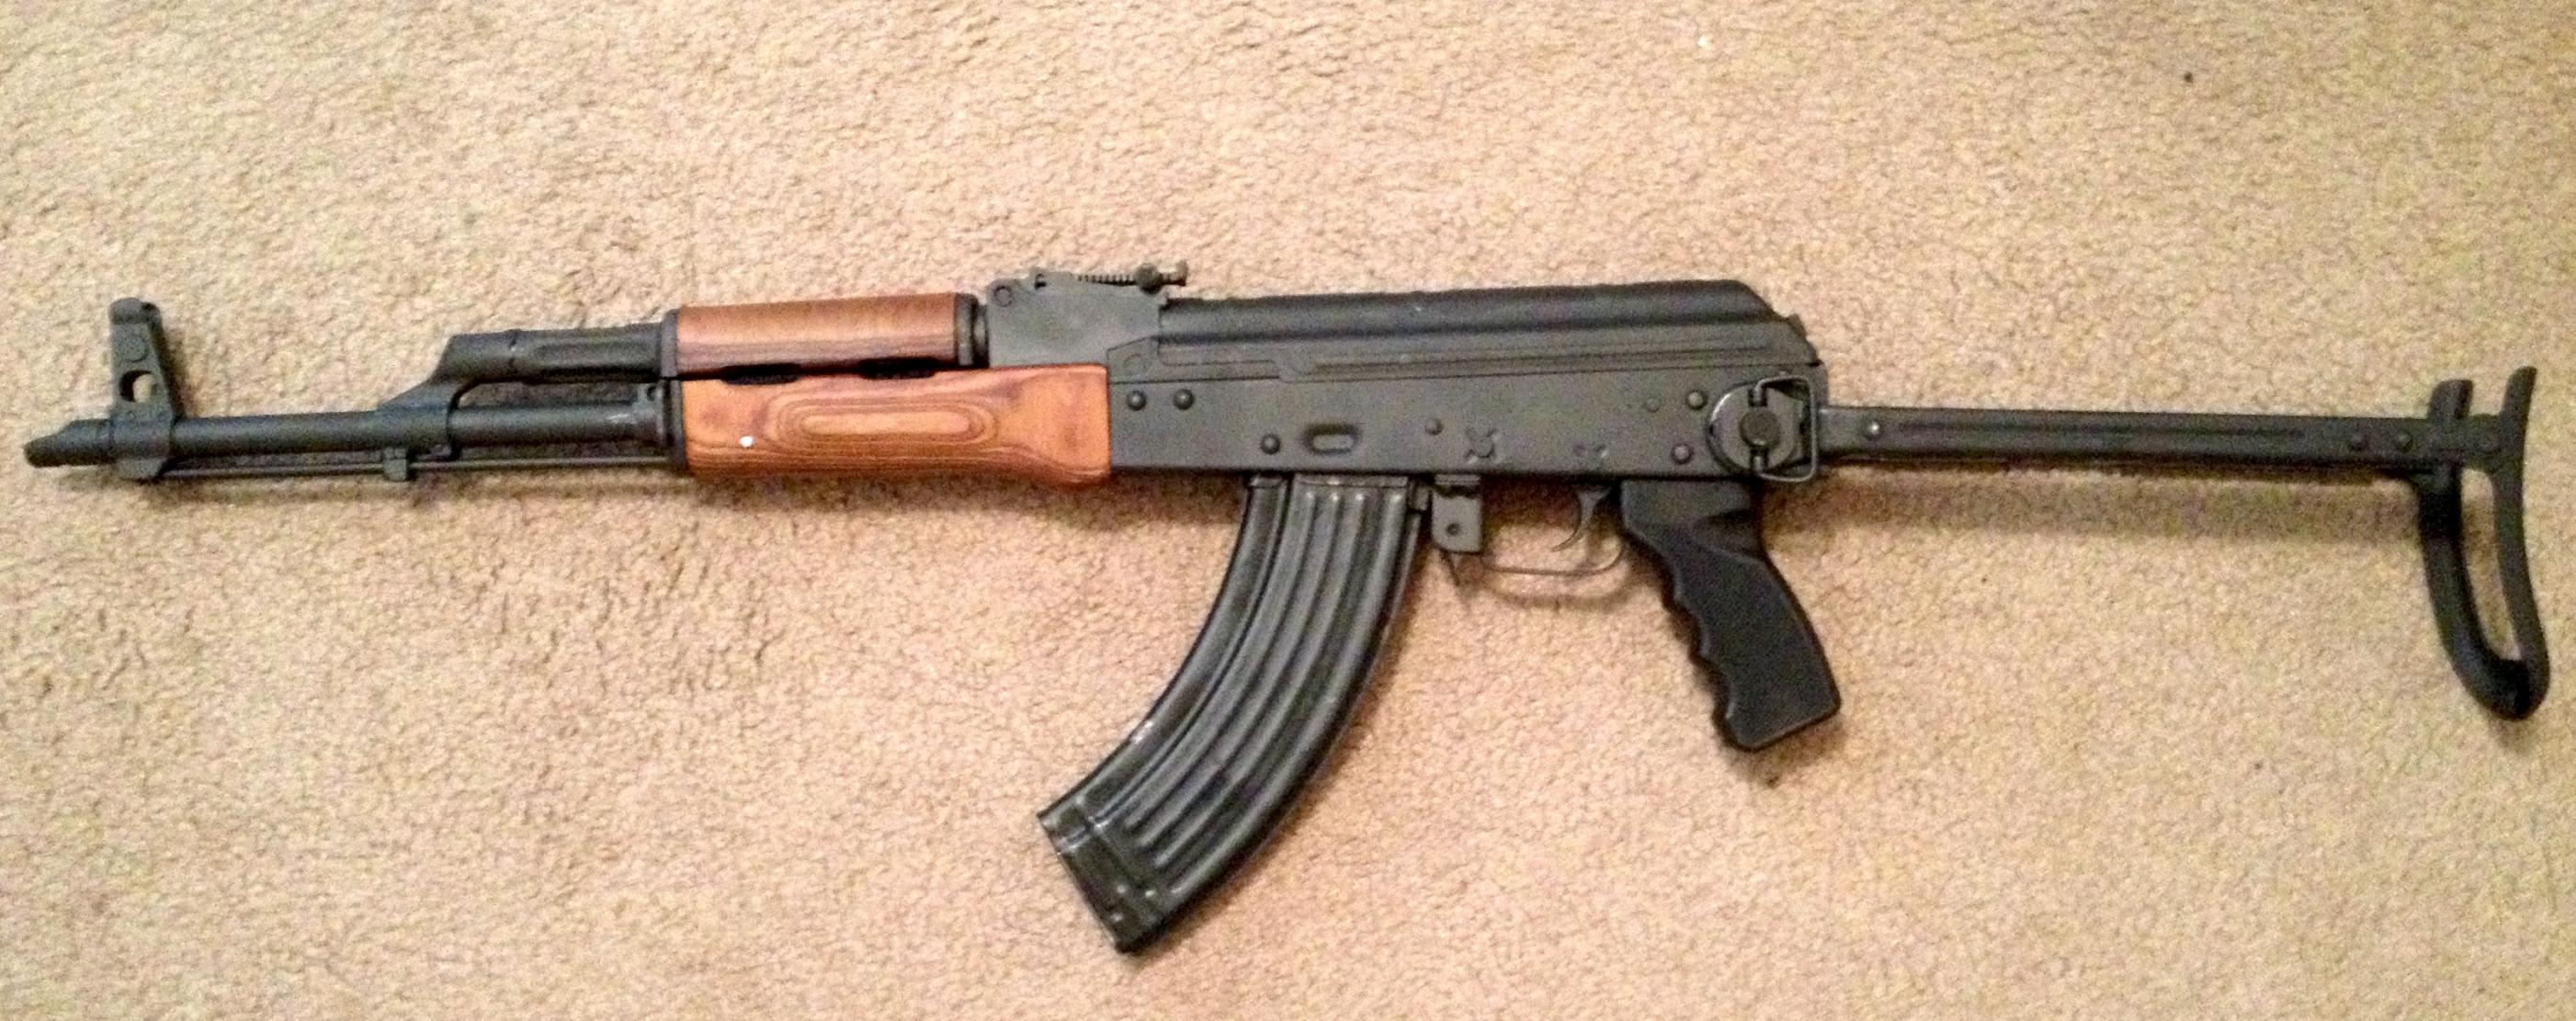 *Official DC AK-47 Picture Thread*-img_1075-copy.jpg